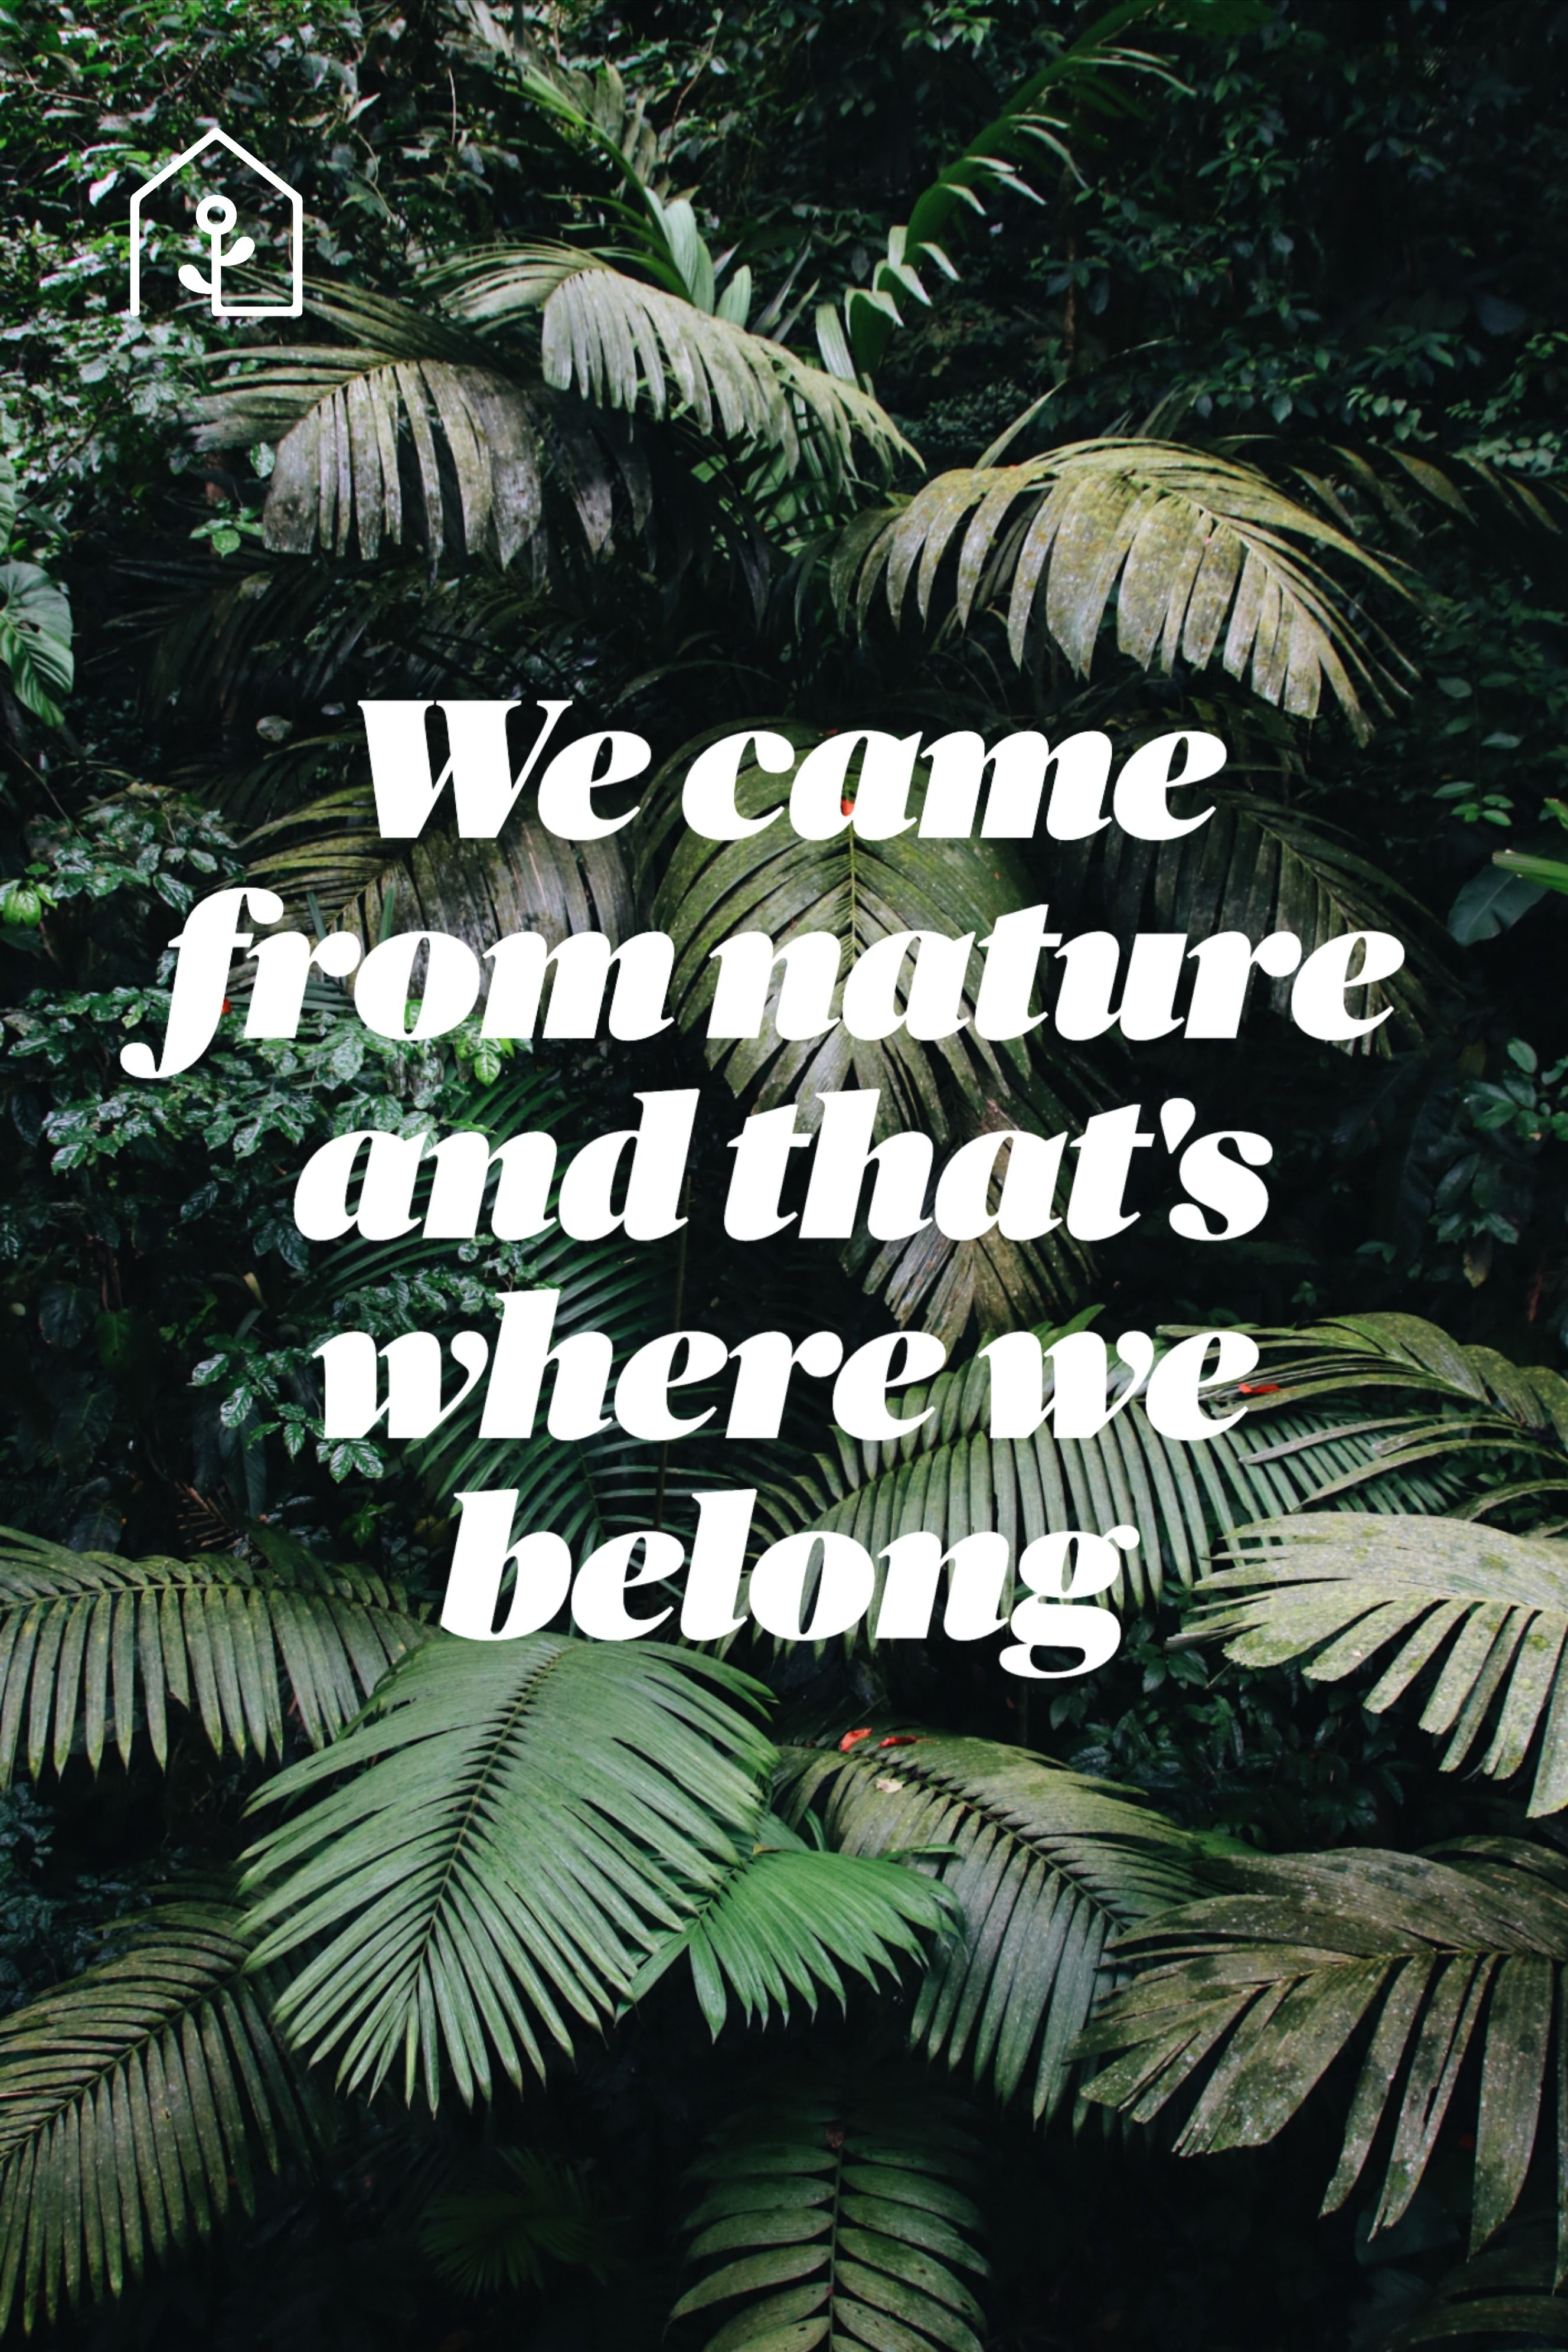 At Forest Homes, we keep nature close in our indoor spaces because nature is always inspiring us to be better, to gain clarity, to be strong and determined, to flow, adapt and let go.  We help you connect to nature in your indoor spaces at Forest Homes.  #interiors #naturelovers#natureinspired#naturalliving #natureatheart #naturalboost #natureinside #natureeverywhere #positivity #natureinspired #lovenature #powerfulnature #naturedecor #naturalspaces #wellbeing #indoornature #urbannature